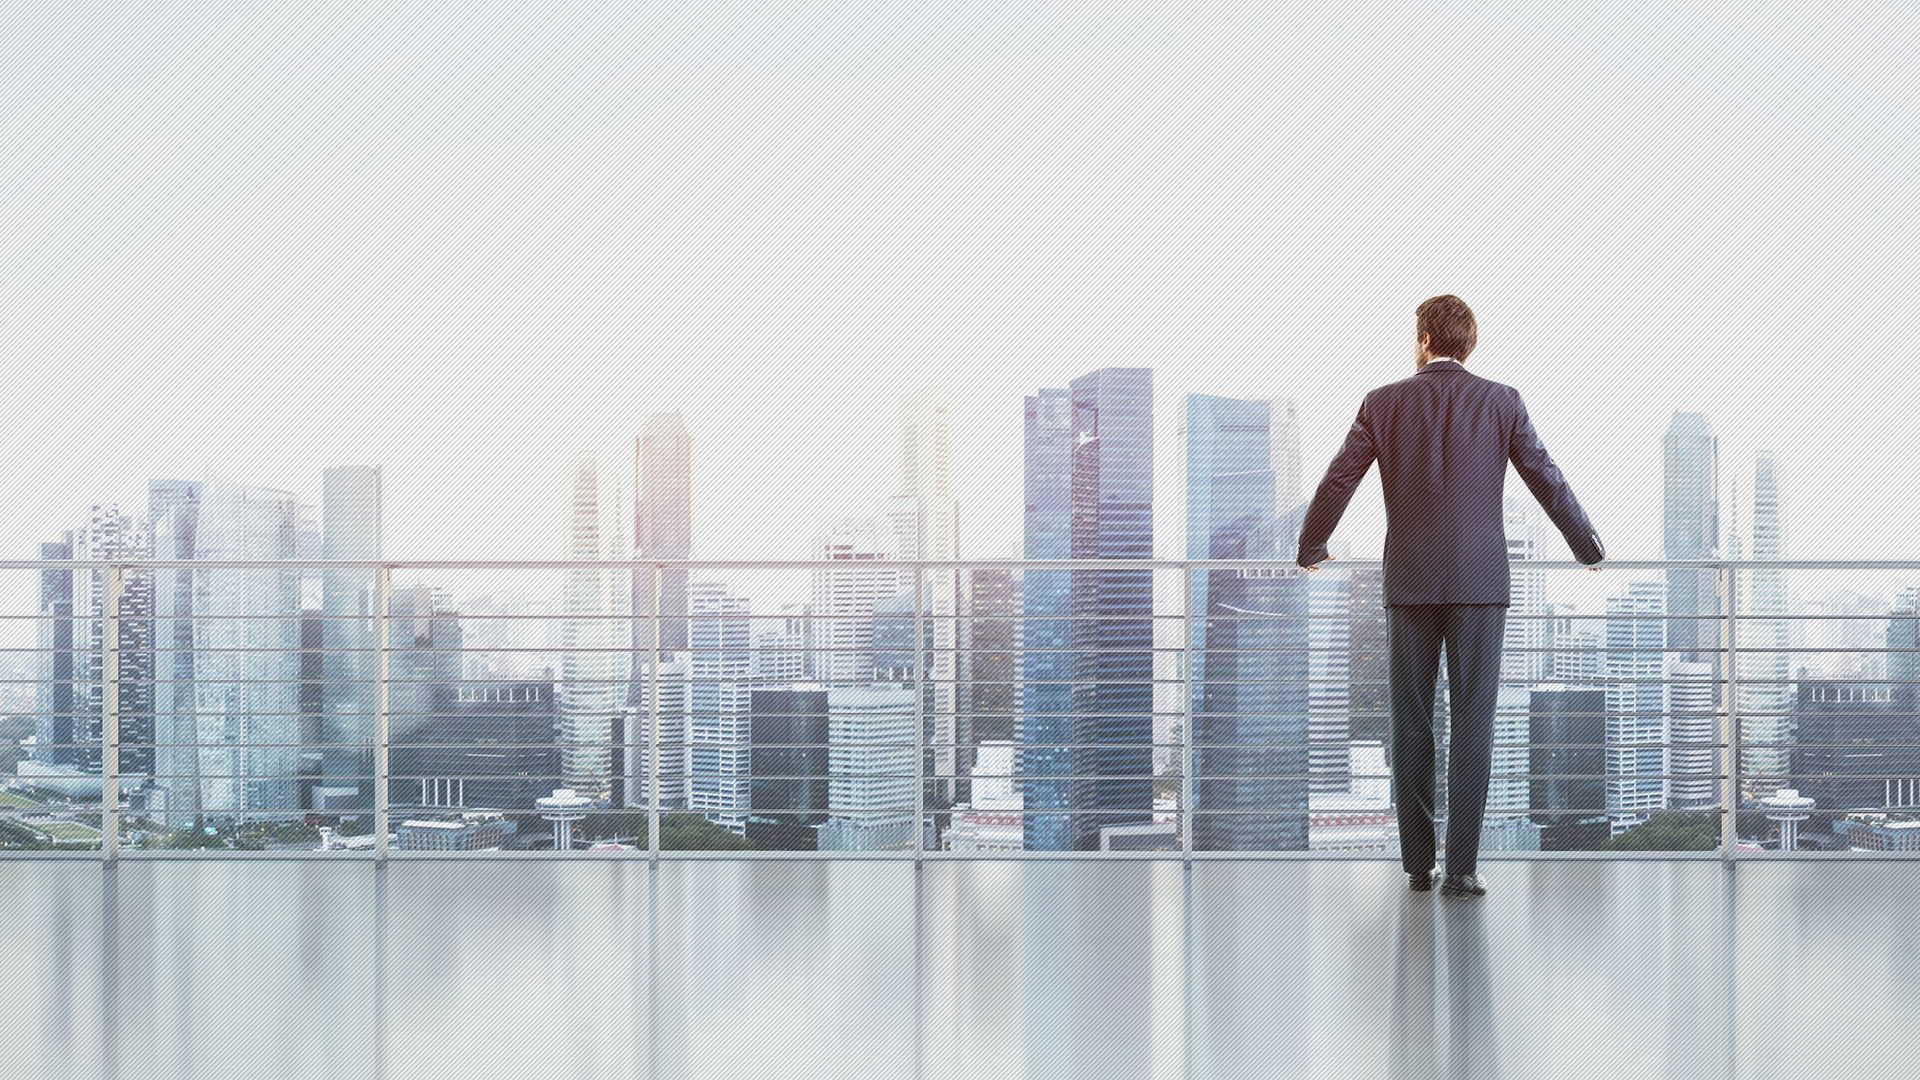 Business Wallpapers HD 65  images